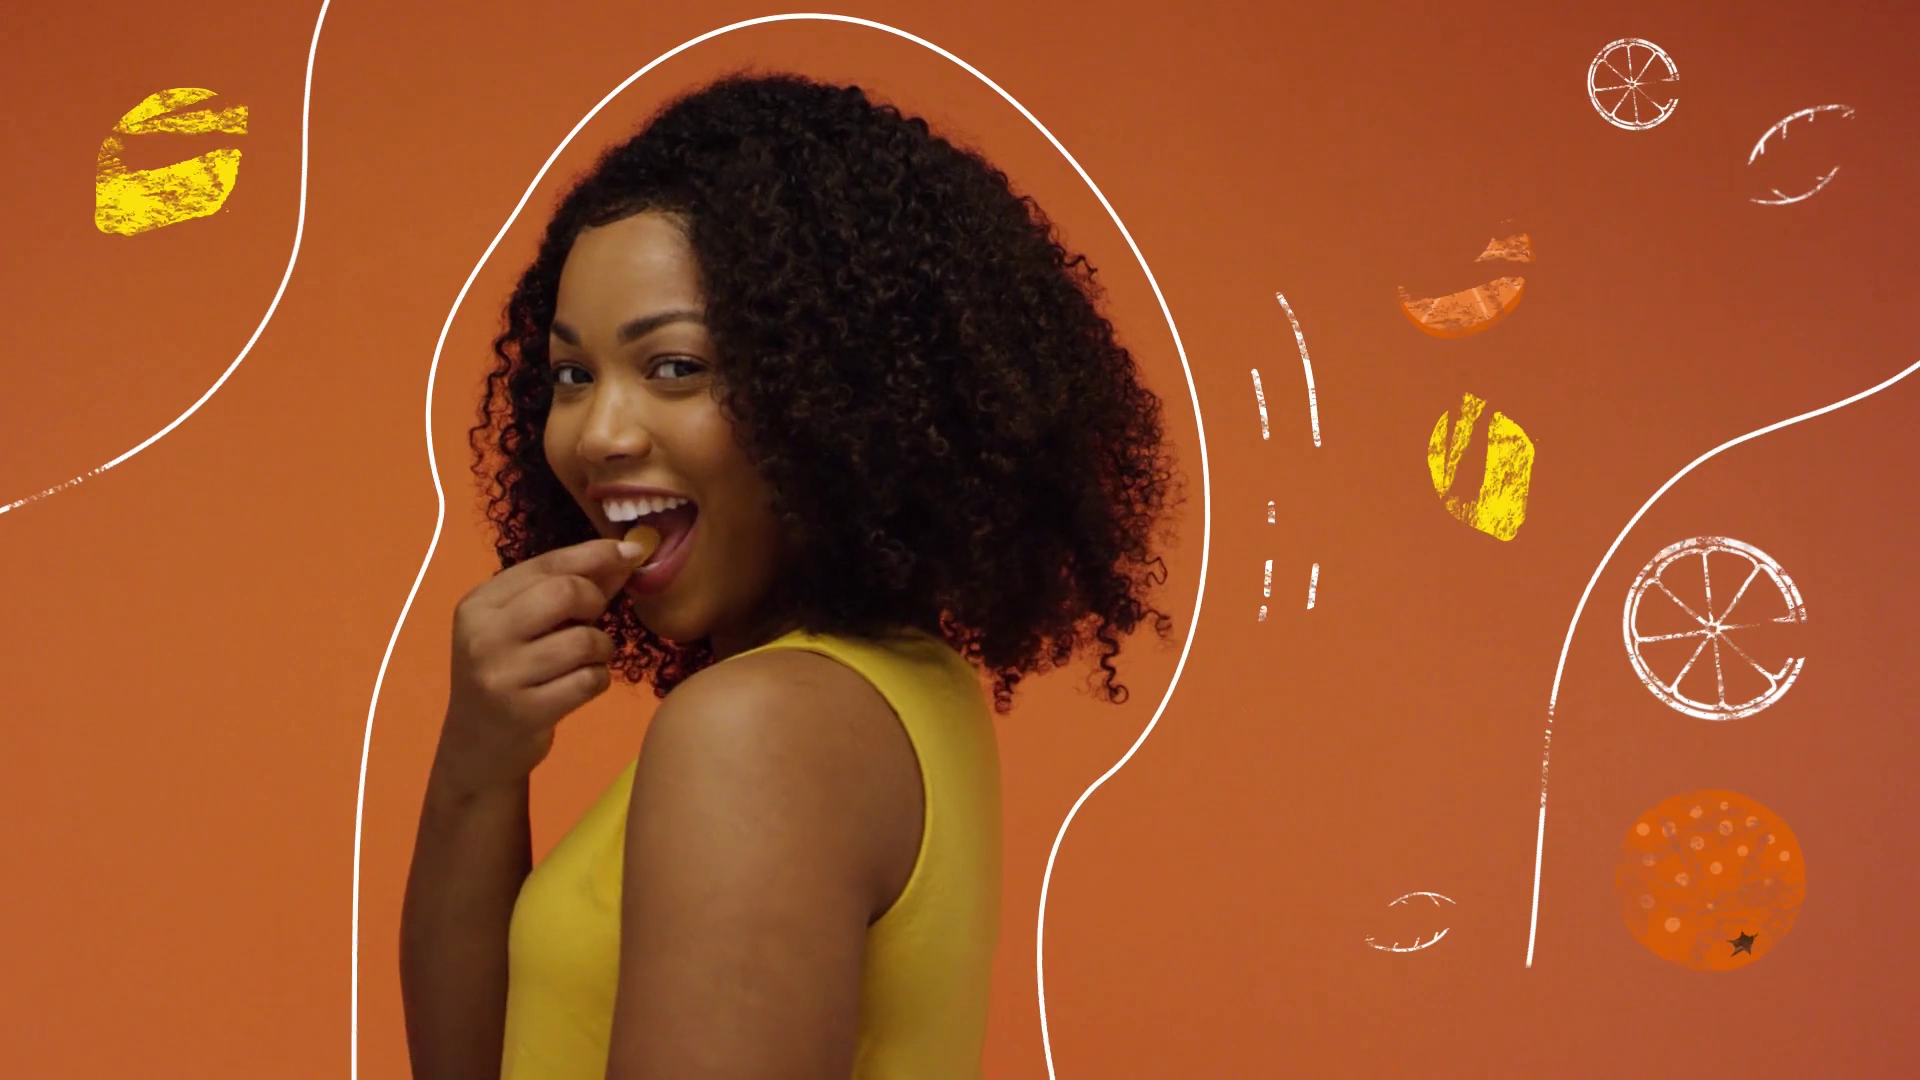 The use of vitamins in Marketing Video